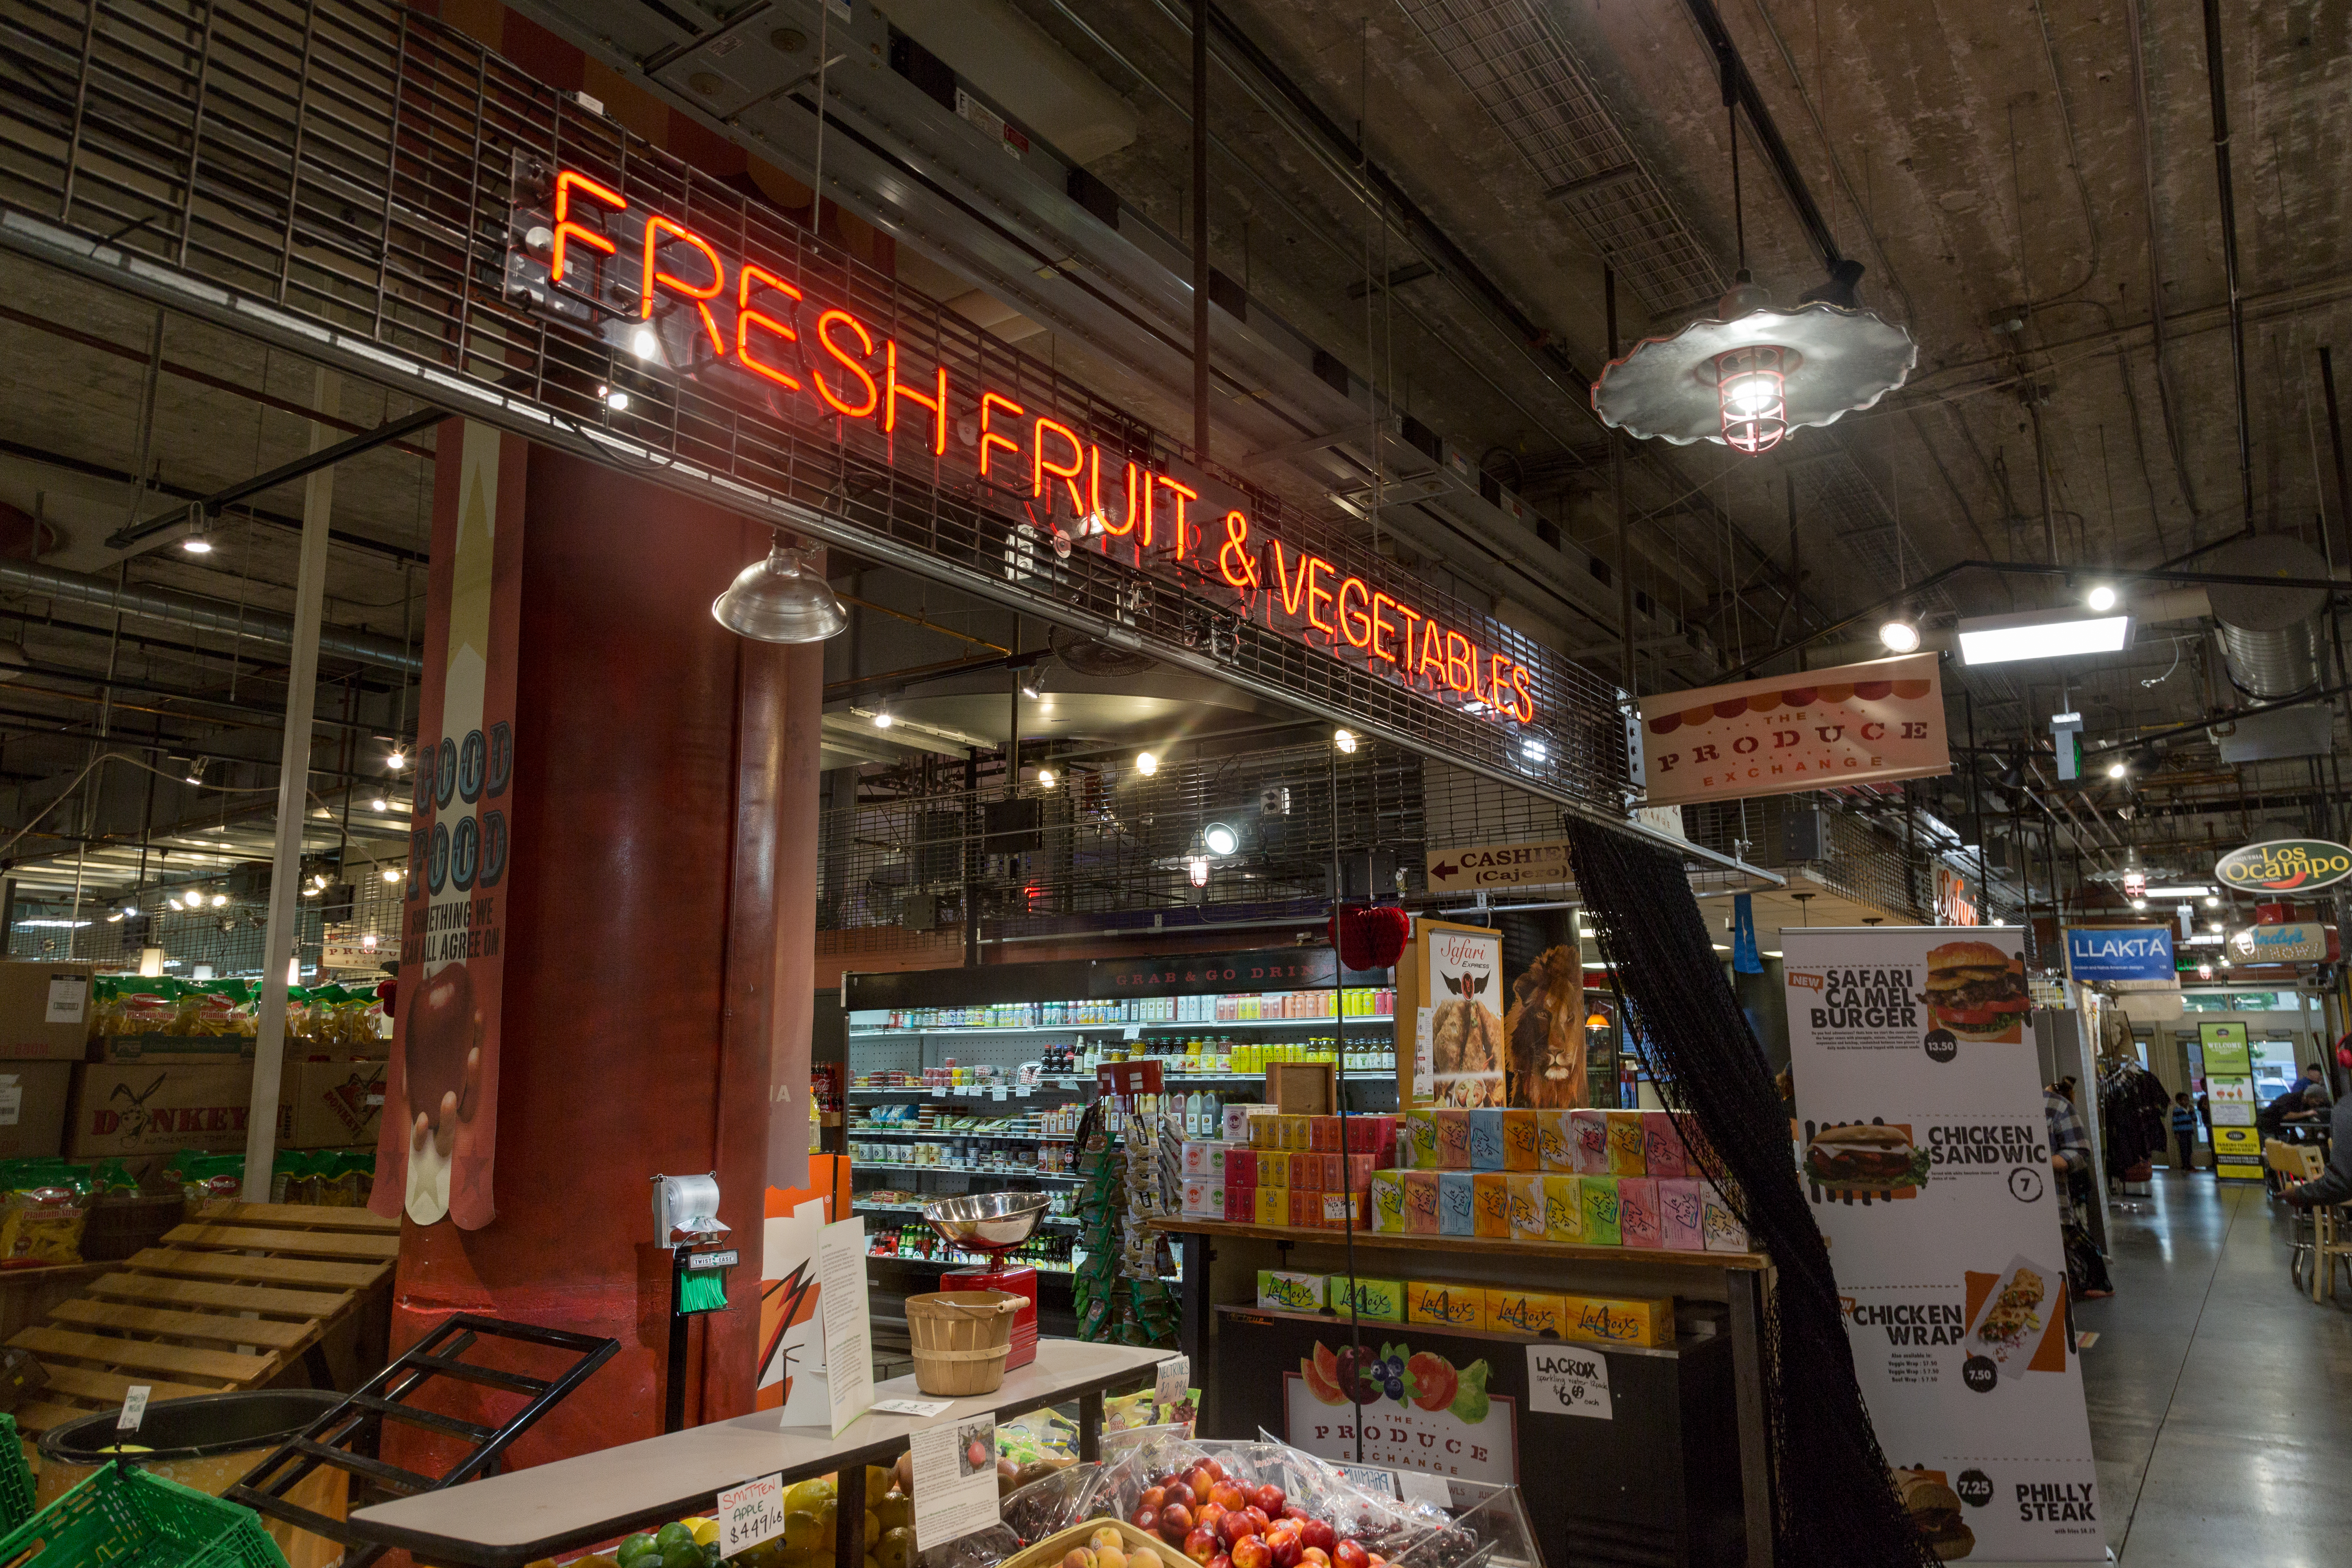 The Produce Exchange At Midtown Global Market By Tony Webster CC BY SA 20